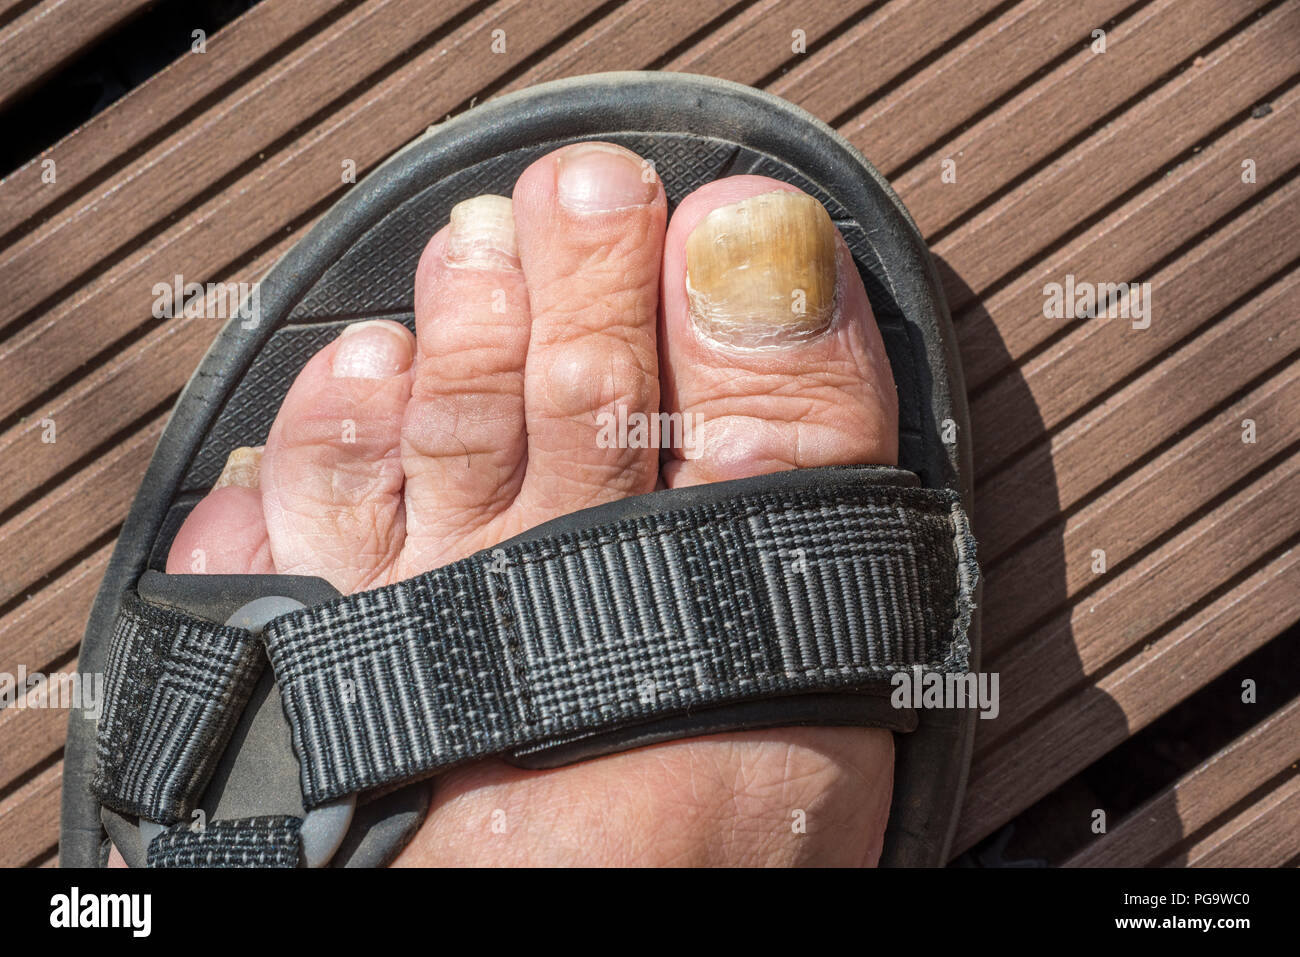 Foot in sandal showing Onychomycosis / tinea unguium, fungal infection of toenail / toe nail - Stock Image